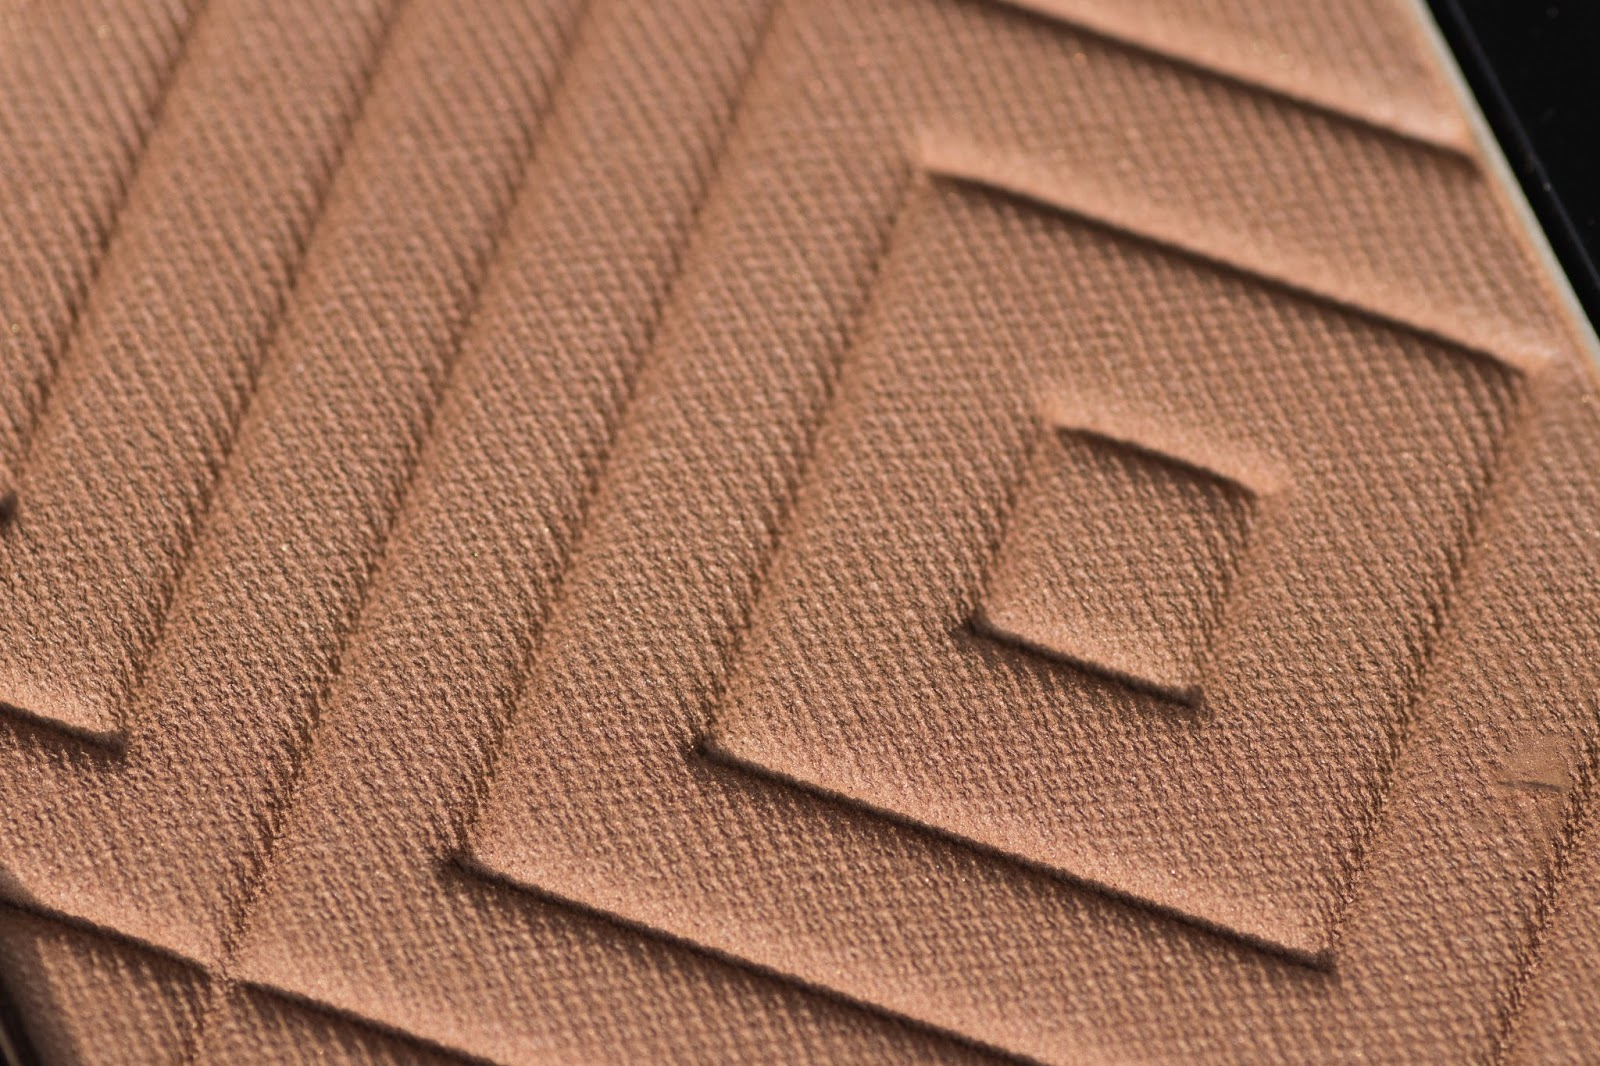 Makeup Geek Bronze Luster in Tawny Closeup